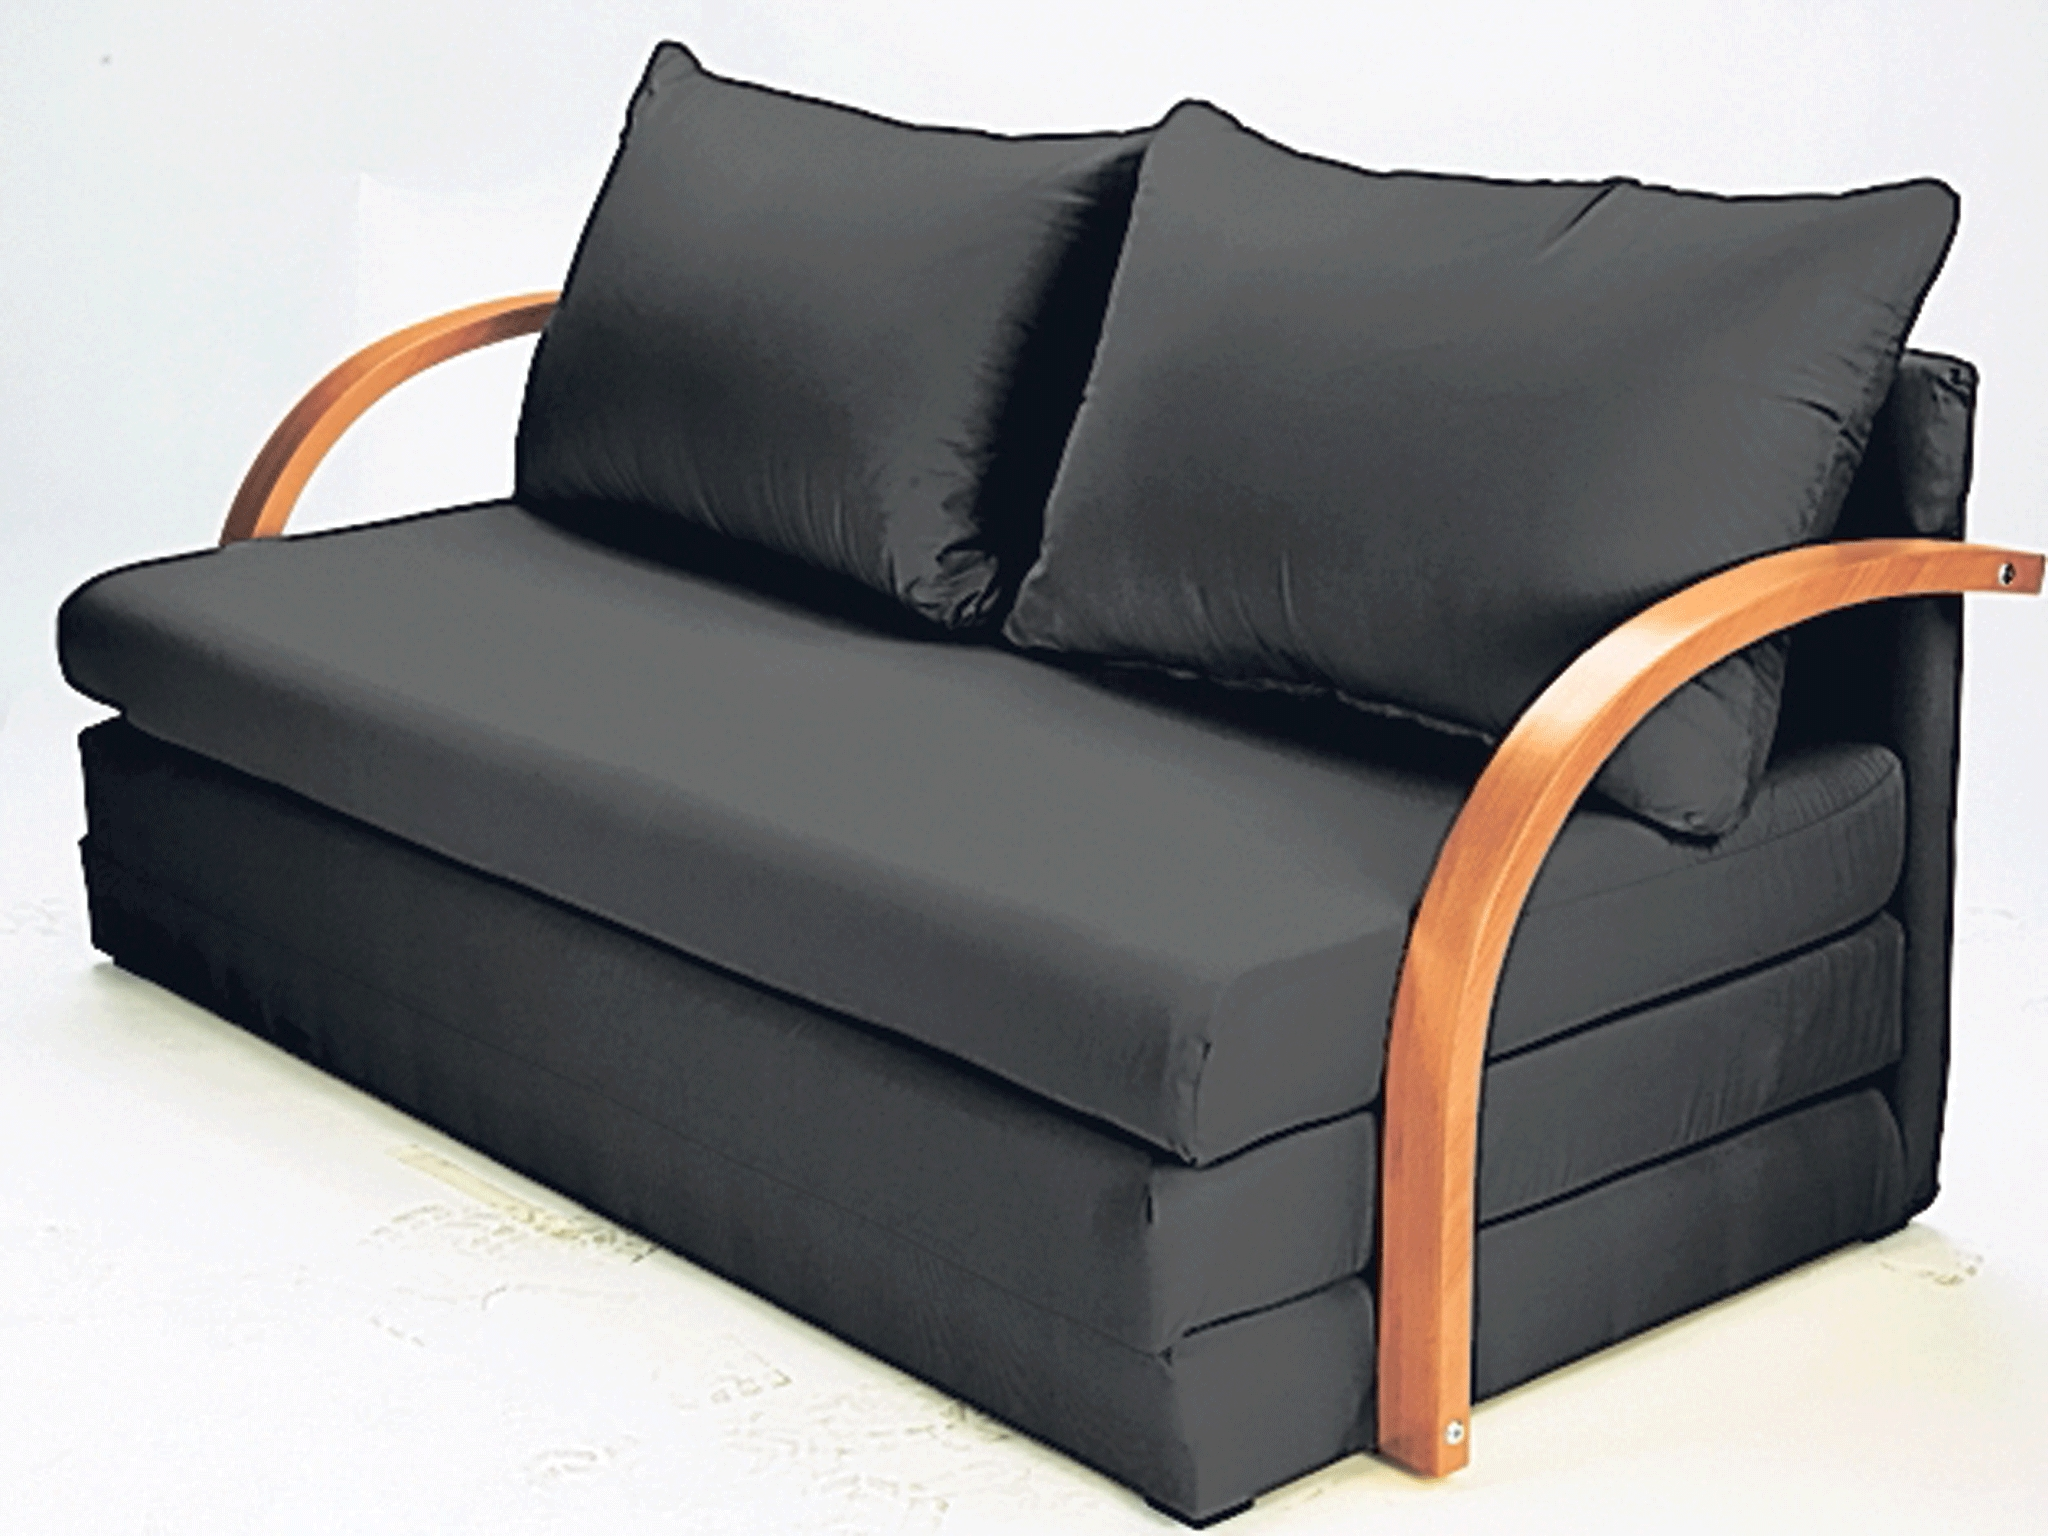 Fold Out Sofa For Folding Sofa Chairs (Image 6 of 15)